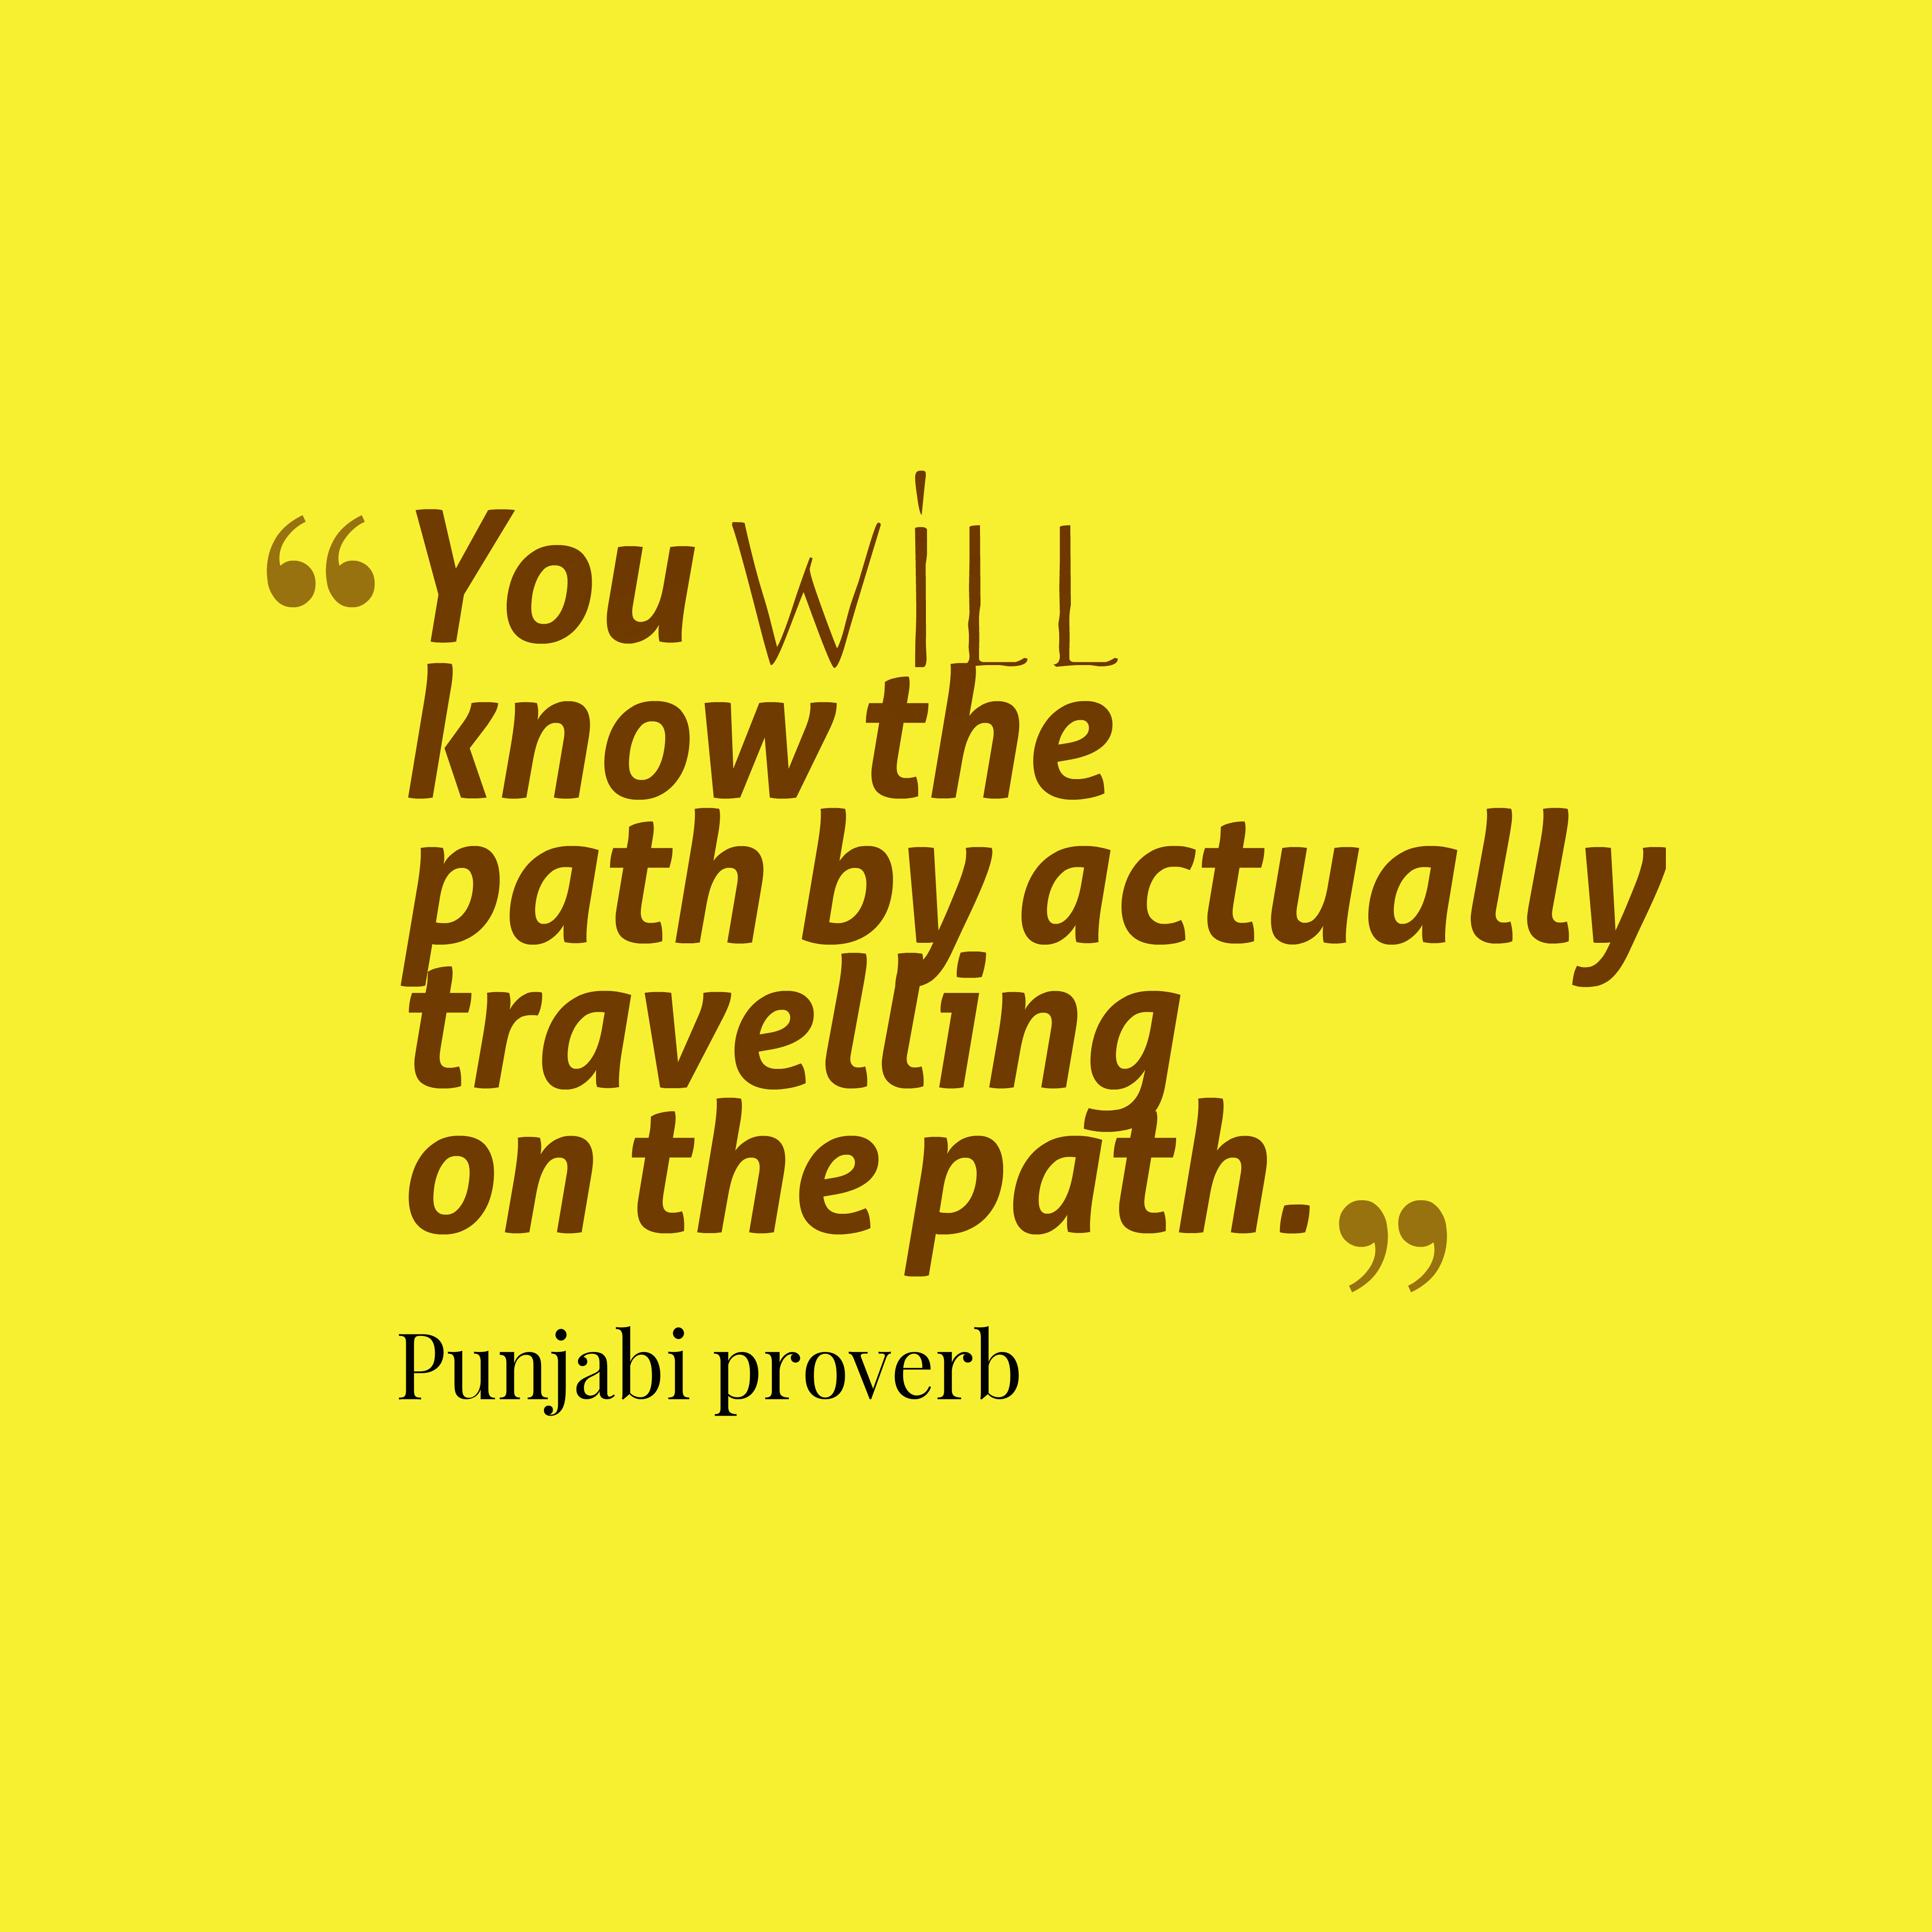 Quotes image of You will know the path by actually travelling on the path.